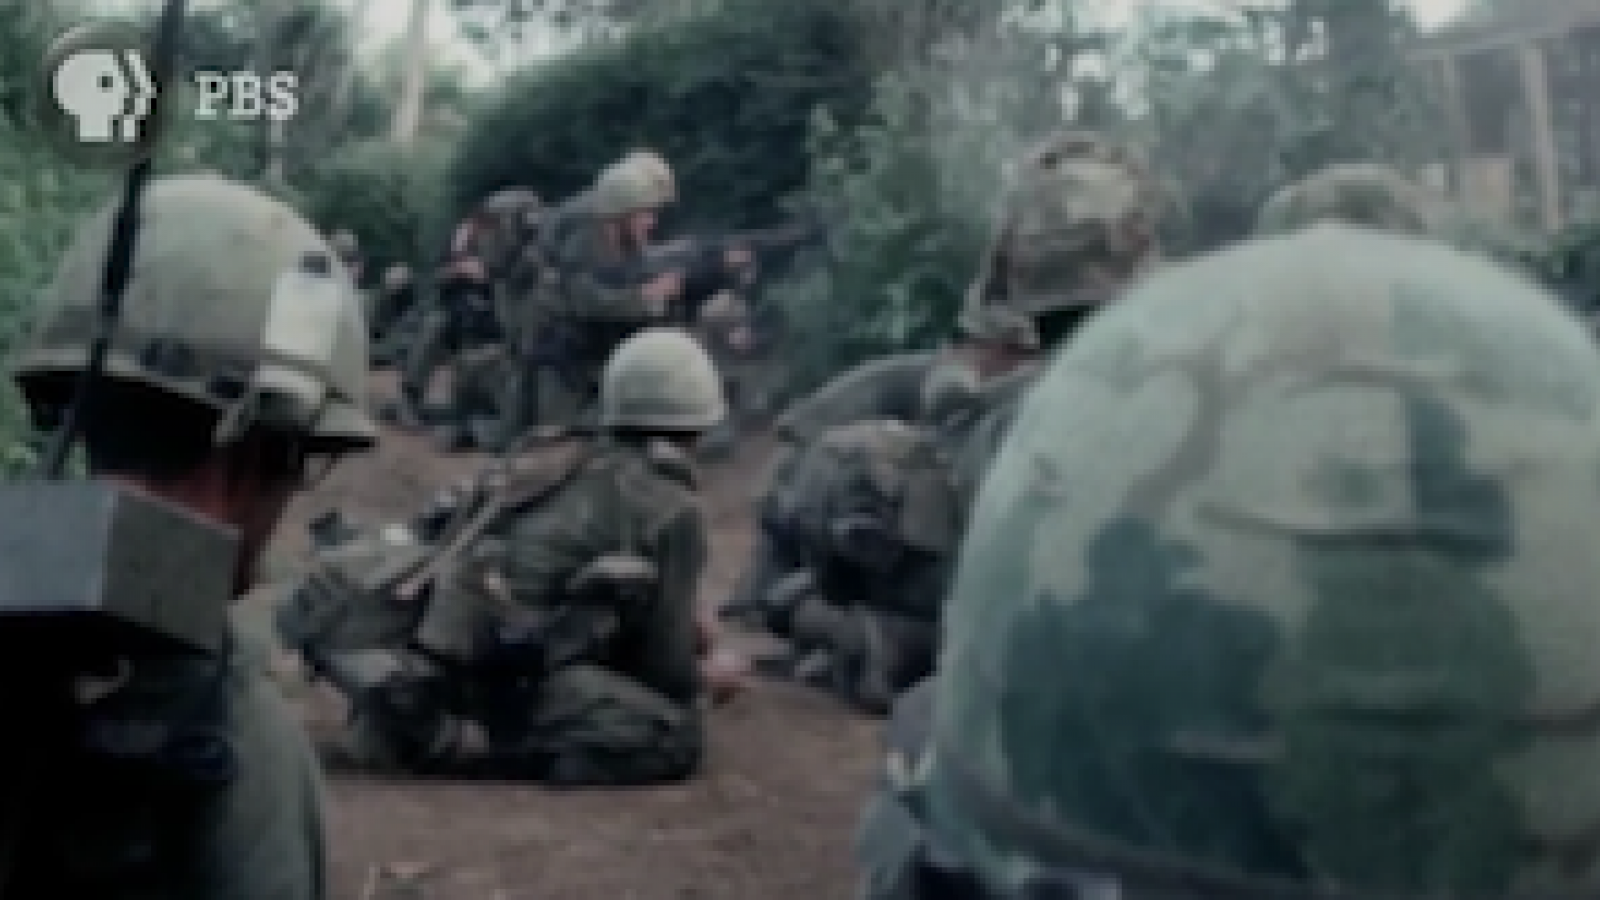 a footage of the vietnam war Related searches: vietnam war soldiers, vietnam war memorial, vietnam war footage, vietnam war combat, vietnam war helicopter, vietnam war battle, vietnam war bombing, vietnam war protest filters sort by.